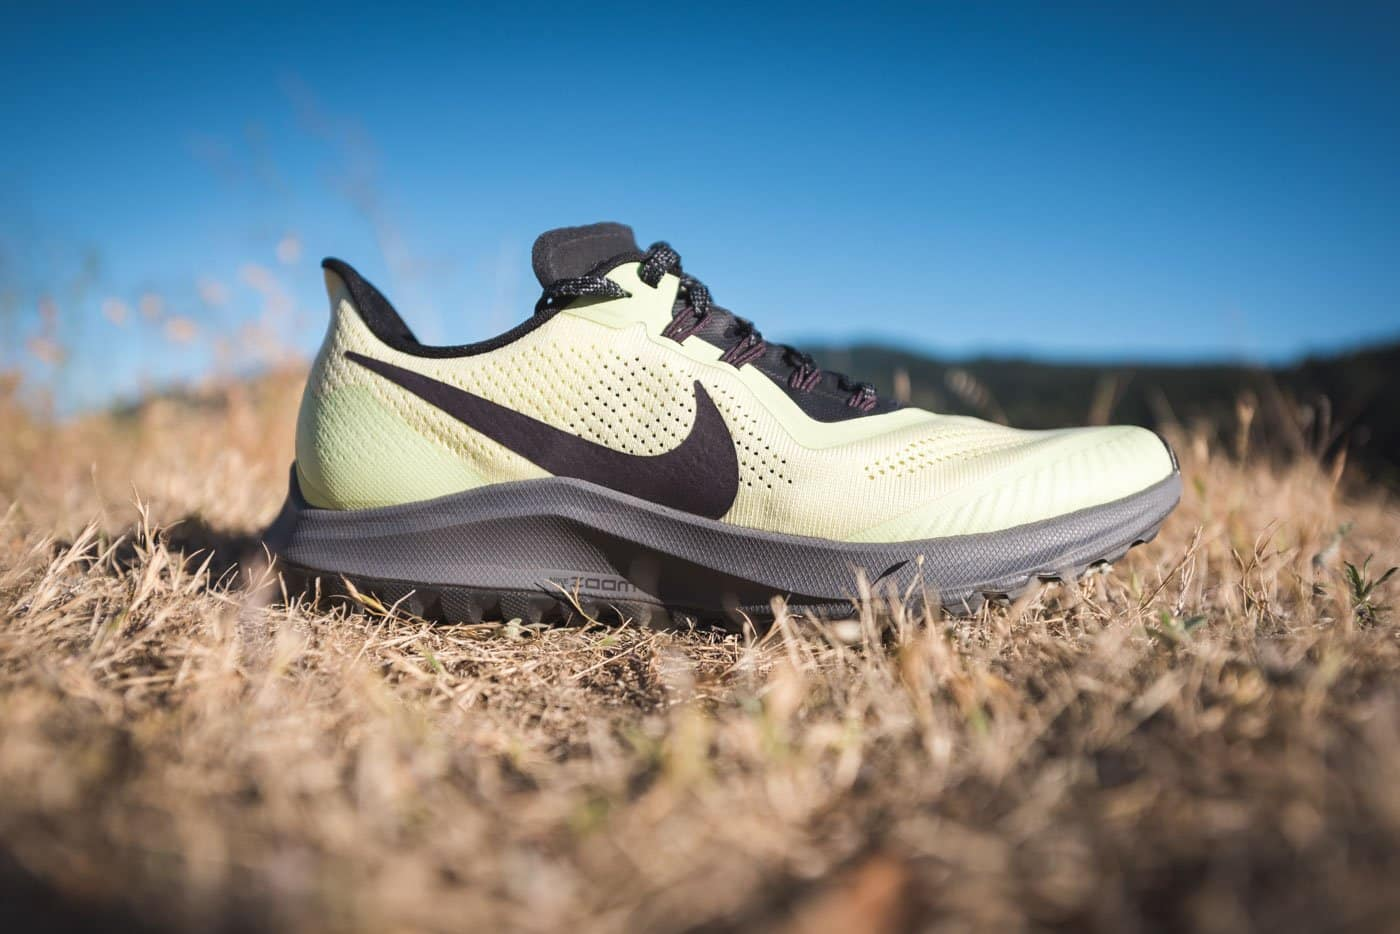 le dernier 86f26 43ce7 Nike Pegasus 36 Trail Review 2019 - Did Nike Just Crush Its ...